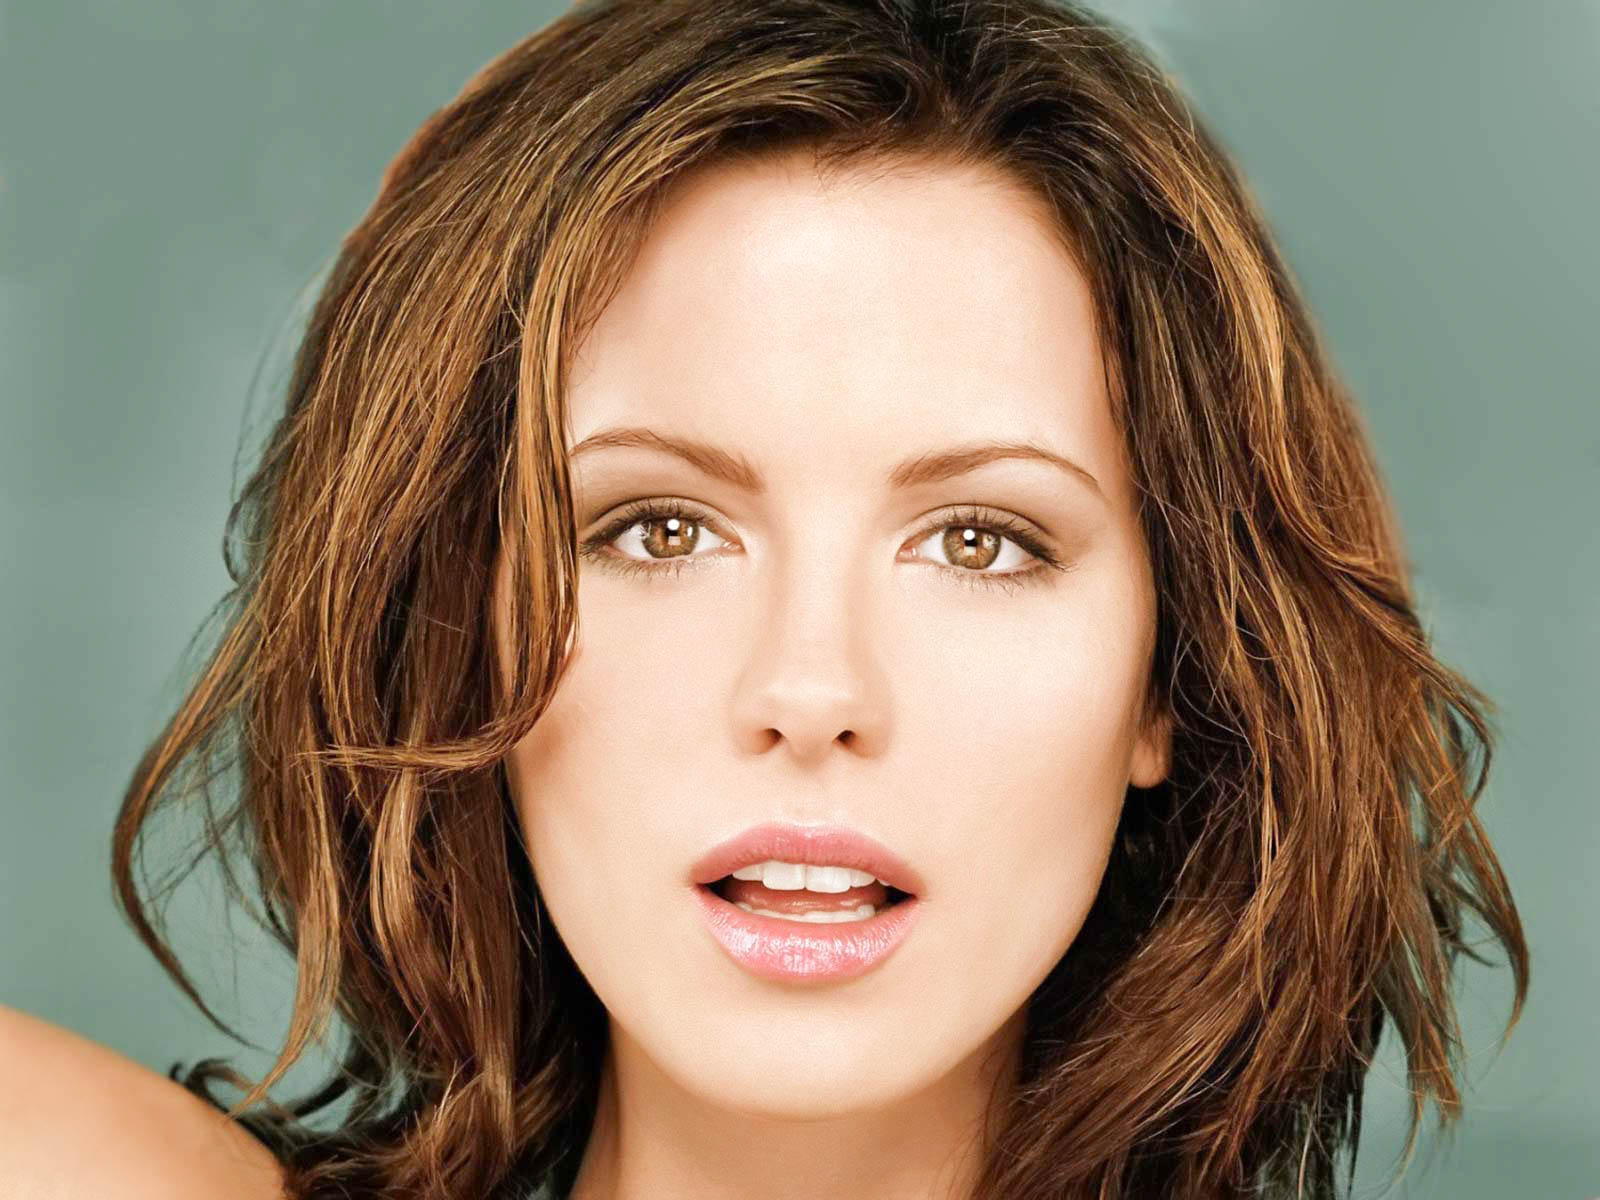 Kate Beckinsale Hot 2017 Wallpapers For Mobile-4586